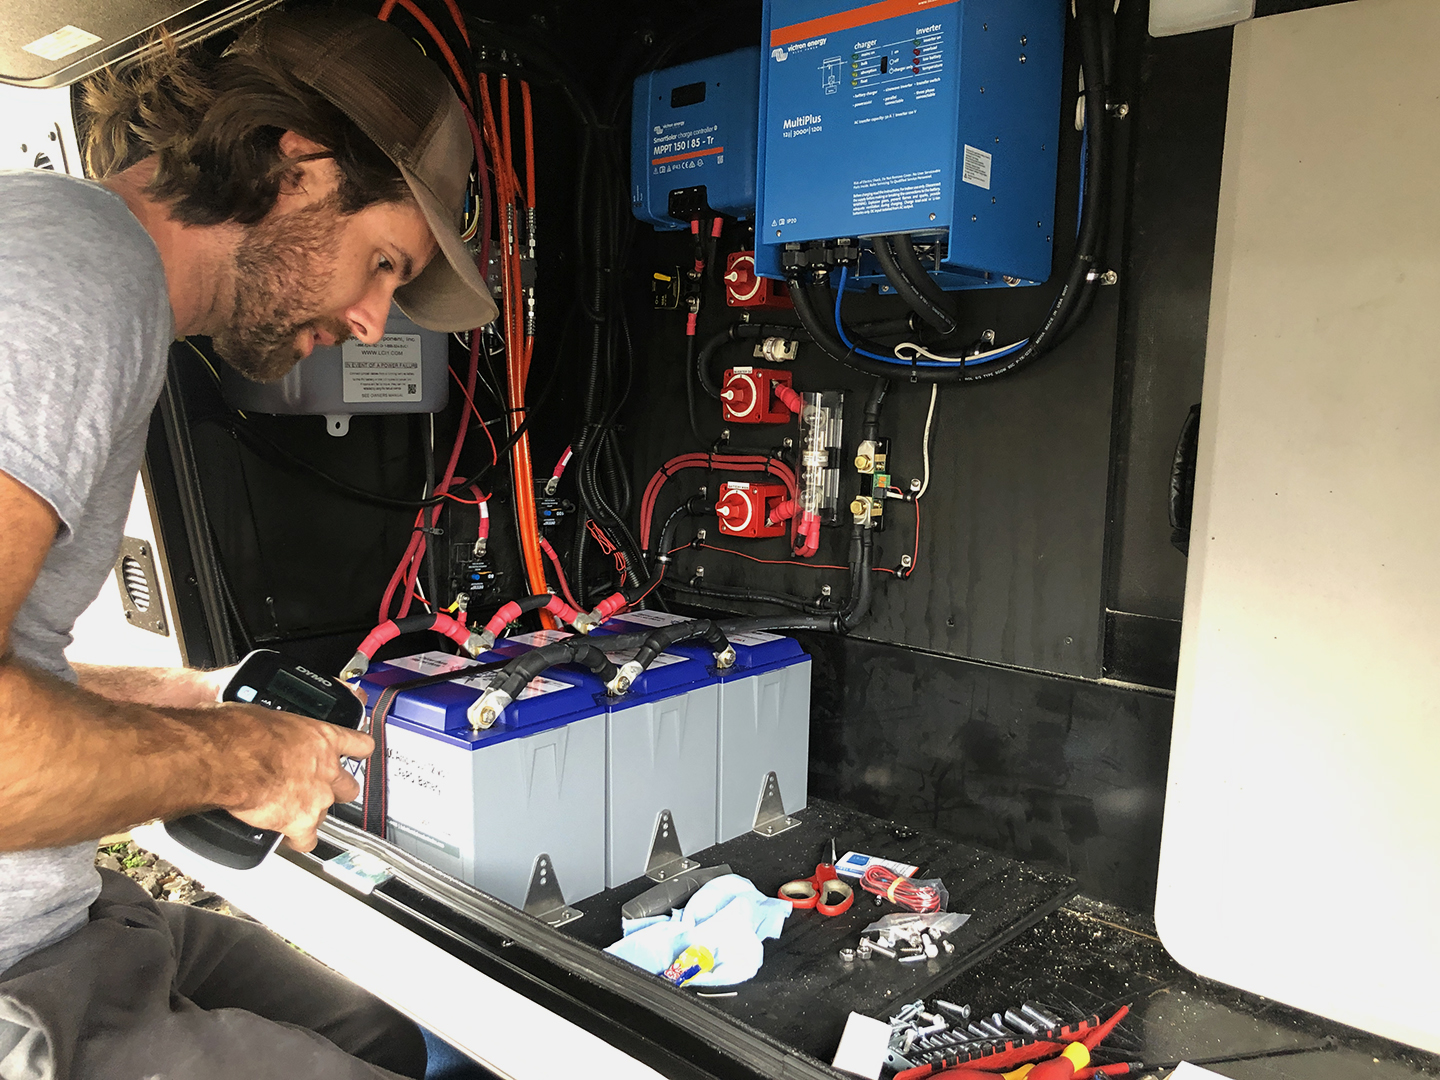 Off The Grid Camper Installations 300ah Battleborn Lithium Batteries Victron Multiplus Inverter Vanleigh Beacon 5th Wheel RV